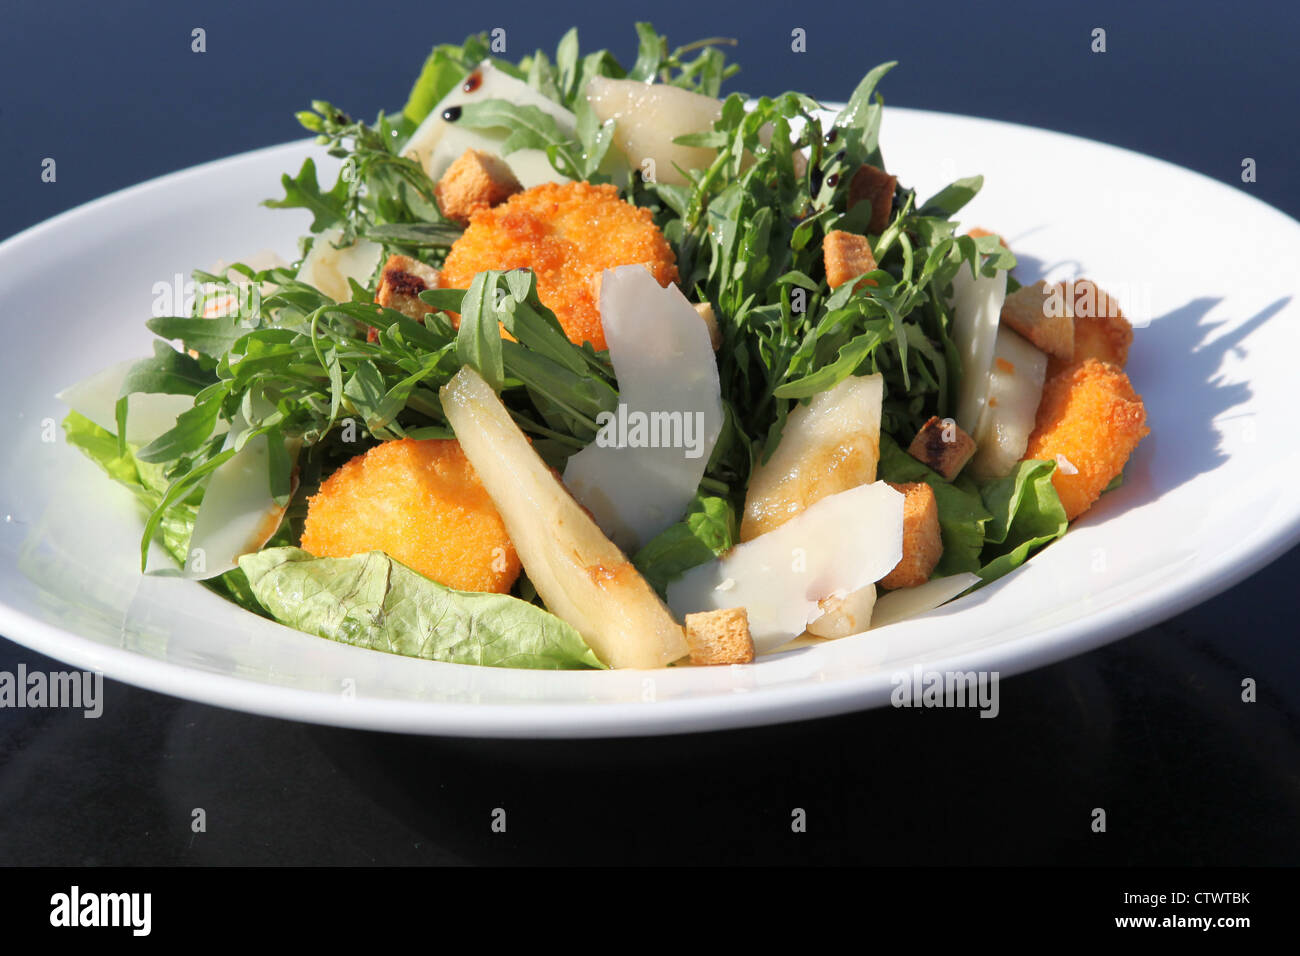 Bowl a trendy helth food salad with fish - Stock Image